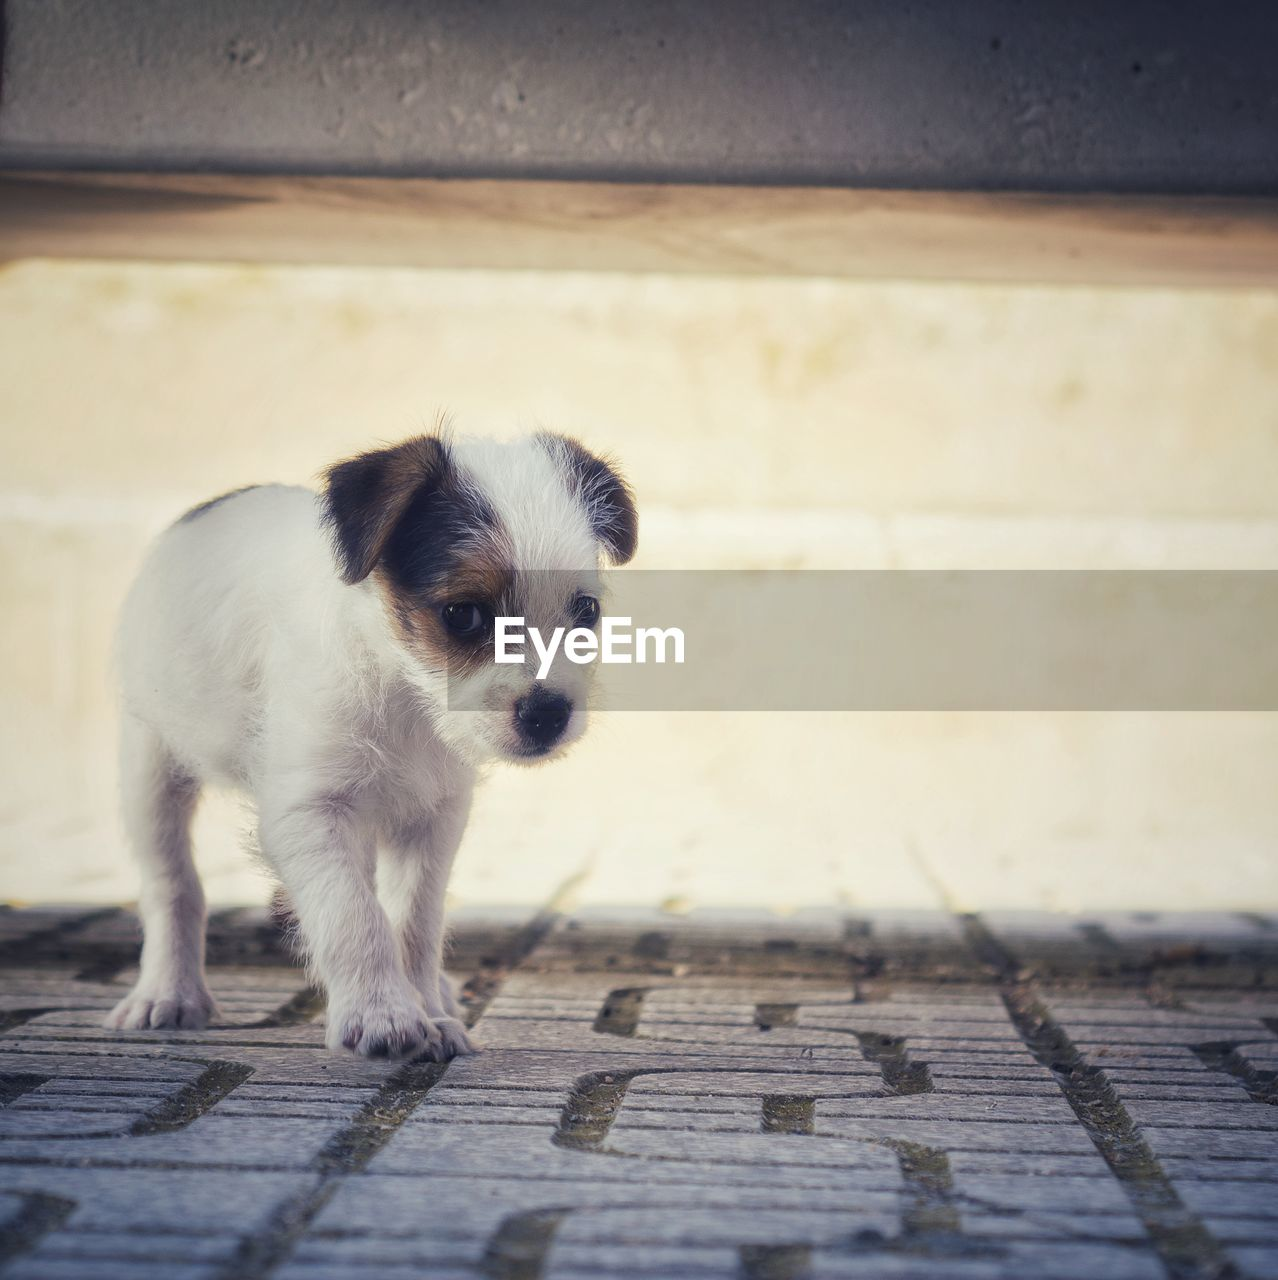 one animal, mammal, domestic animals, domestic, pets, canine, dog, vertebrate, portrait, young animal, looking at camera, puppy, no people, footpath, day, standing, full length, flooring